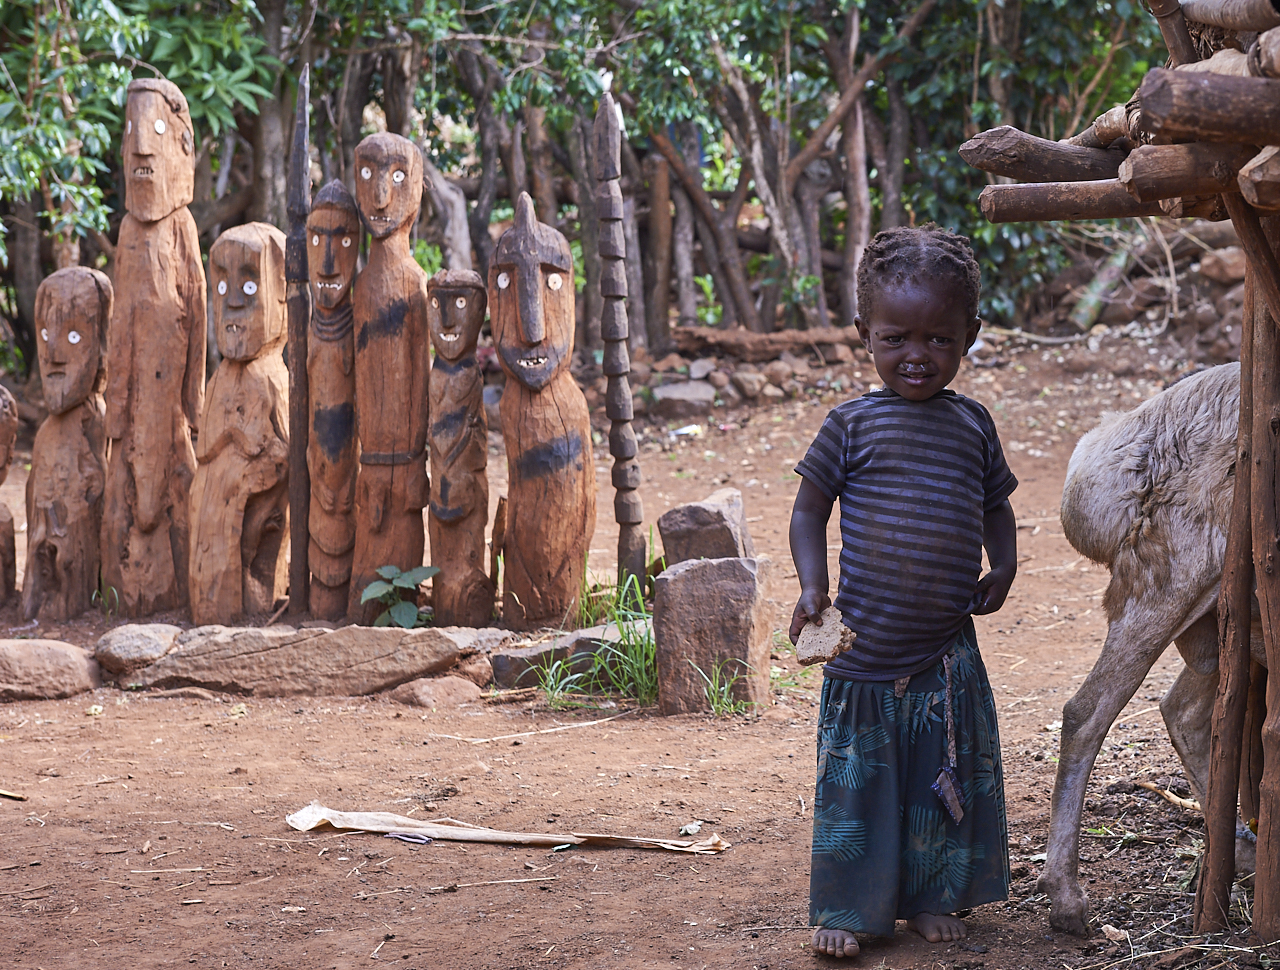 Konso girl with family totems